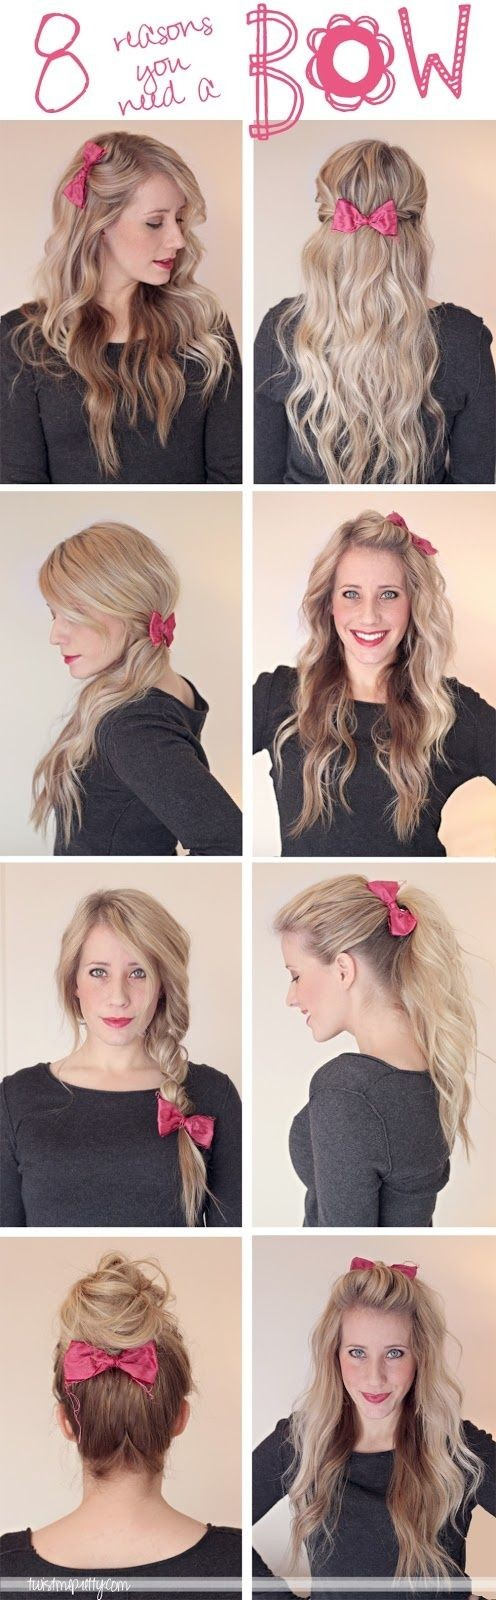 pretty hairstyles with bows